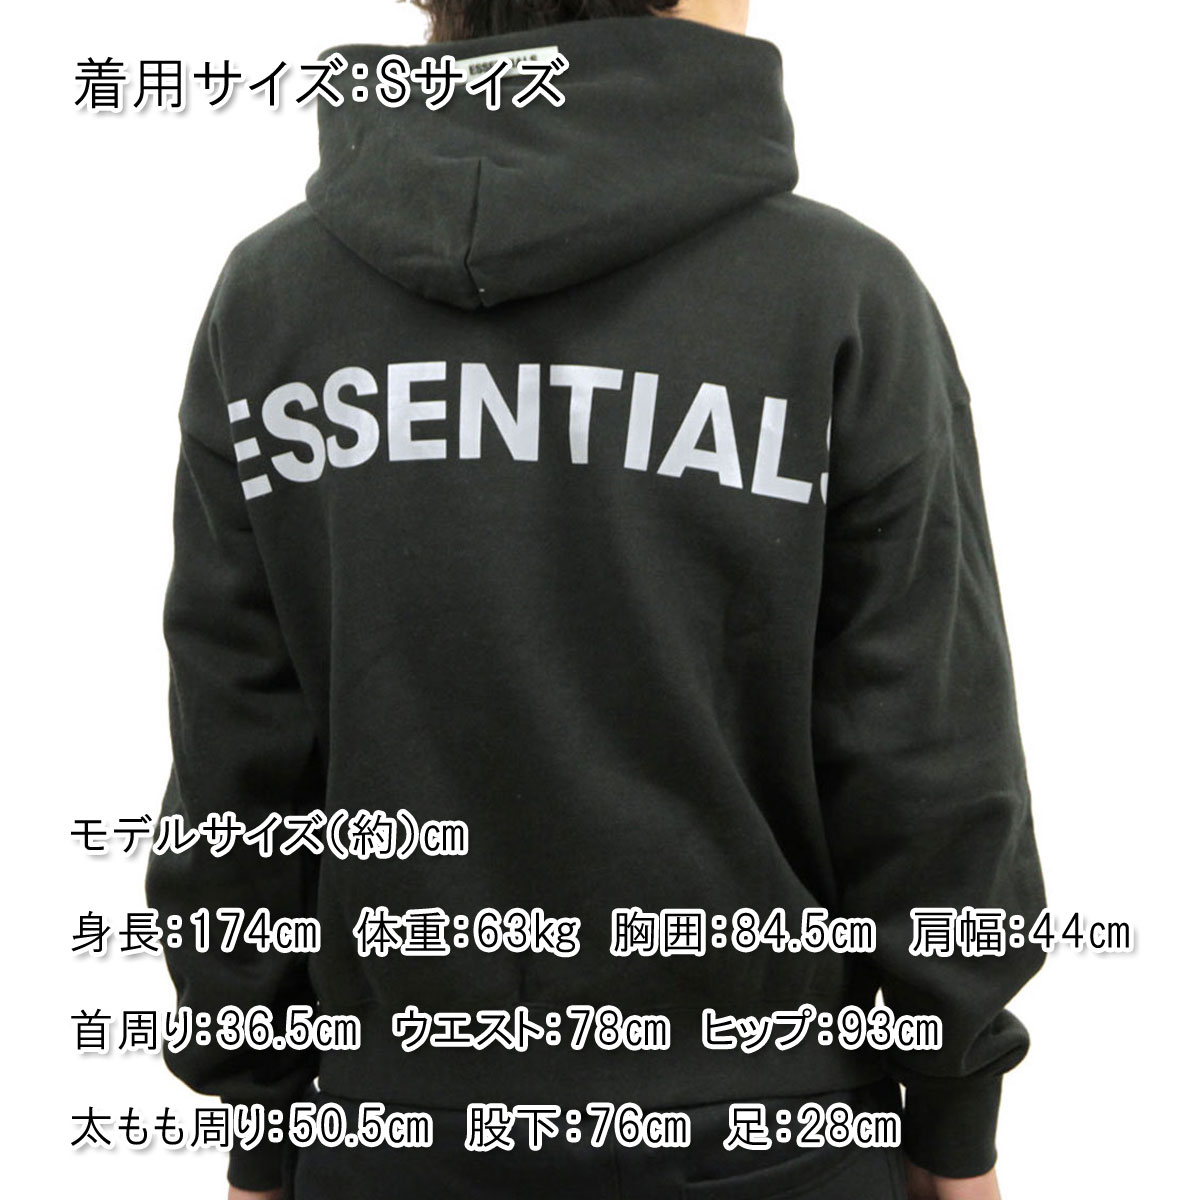 フィアオブゴッド パーカー メンズ 正規品 FEAR OF GOD プルオーバーパーカー ロゴ FOG - FEAR OF GOD ESSENTIALS 3M LOGO PULLOVER HOODIE BLACK AA5B B1C C1D D5E E13F